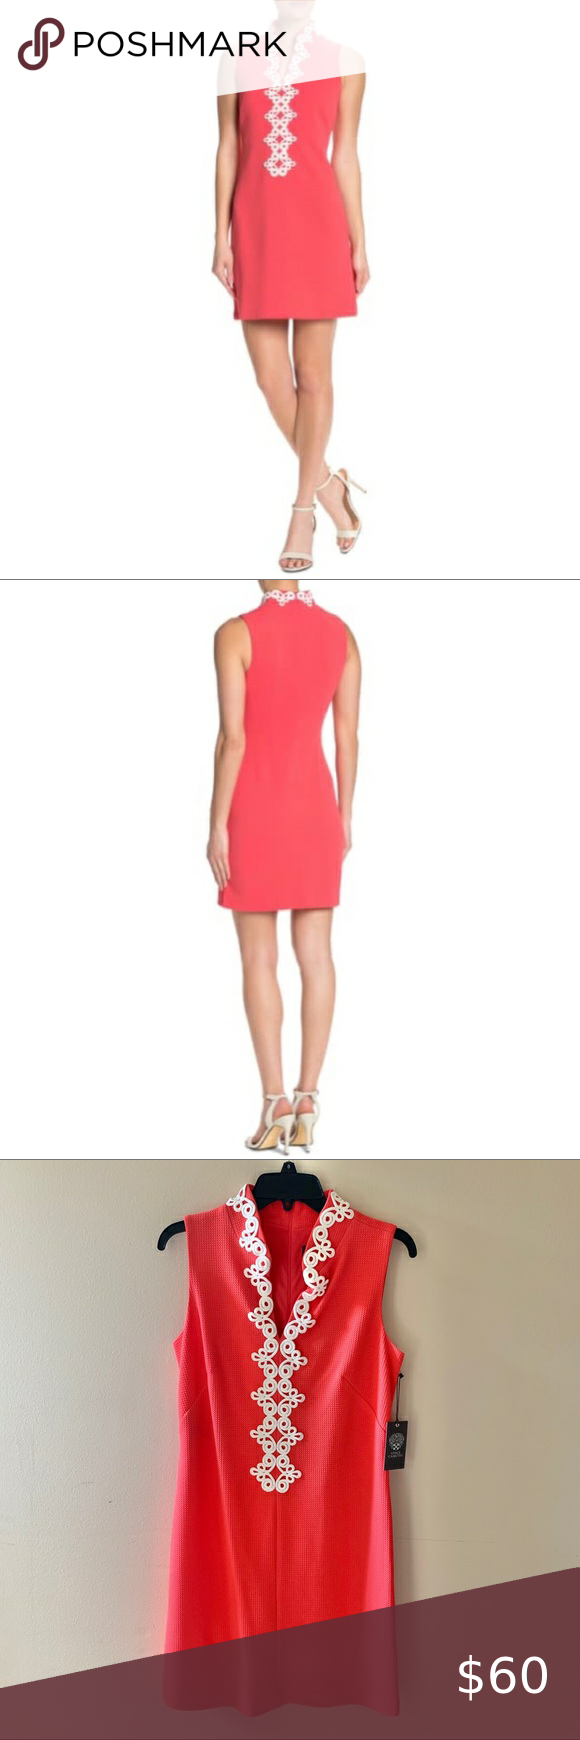 Nwt Vince Camuto Embroidered Shift Dress Size 8 Nwt Vince Camuto Embroidered Shift Dress Size 8 New With Embroidered Shift Dress Pink Mini Dresses Shift Dress [ 1740 x 580 Pixel ]